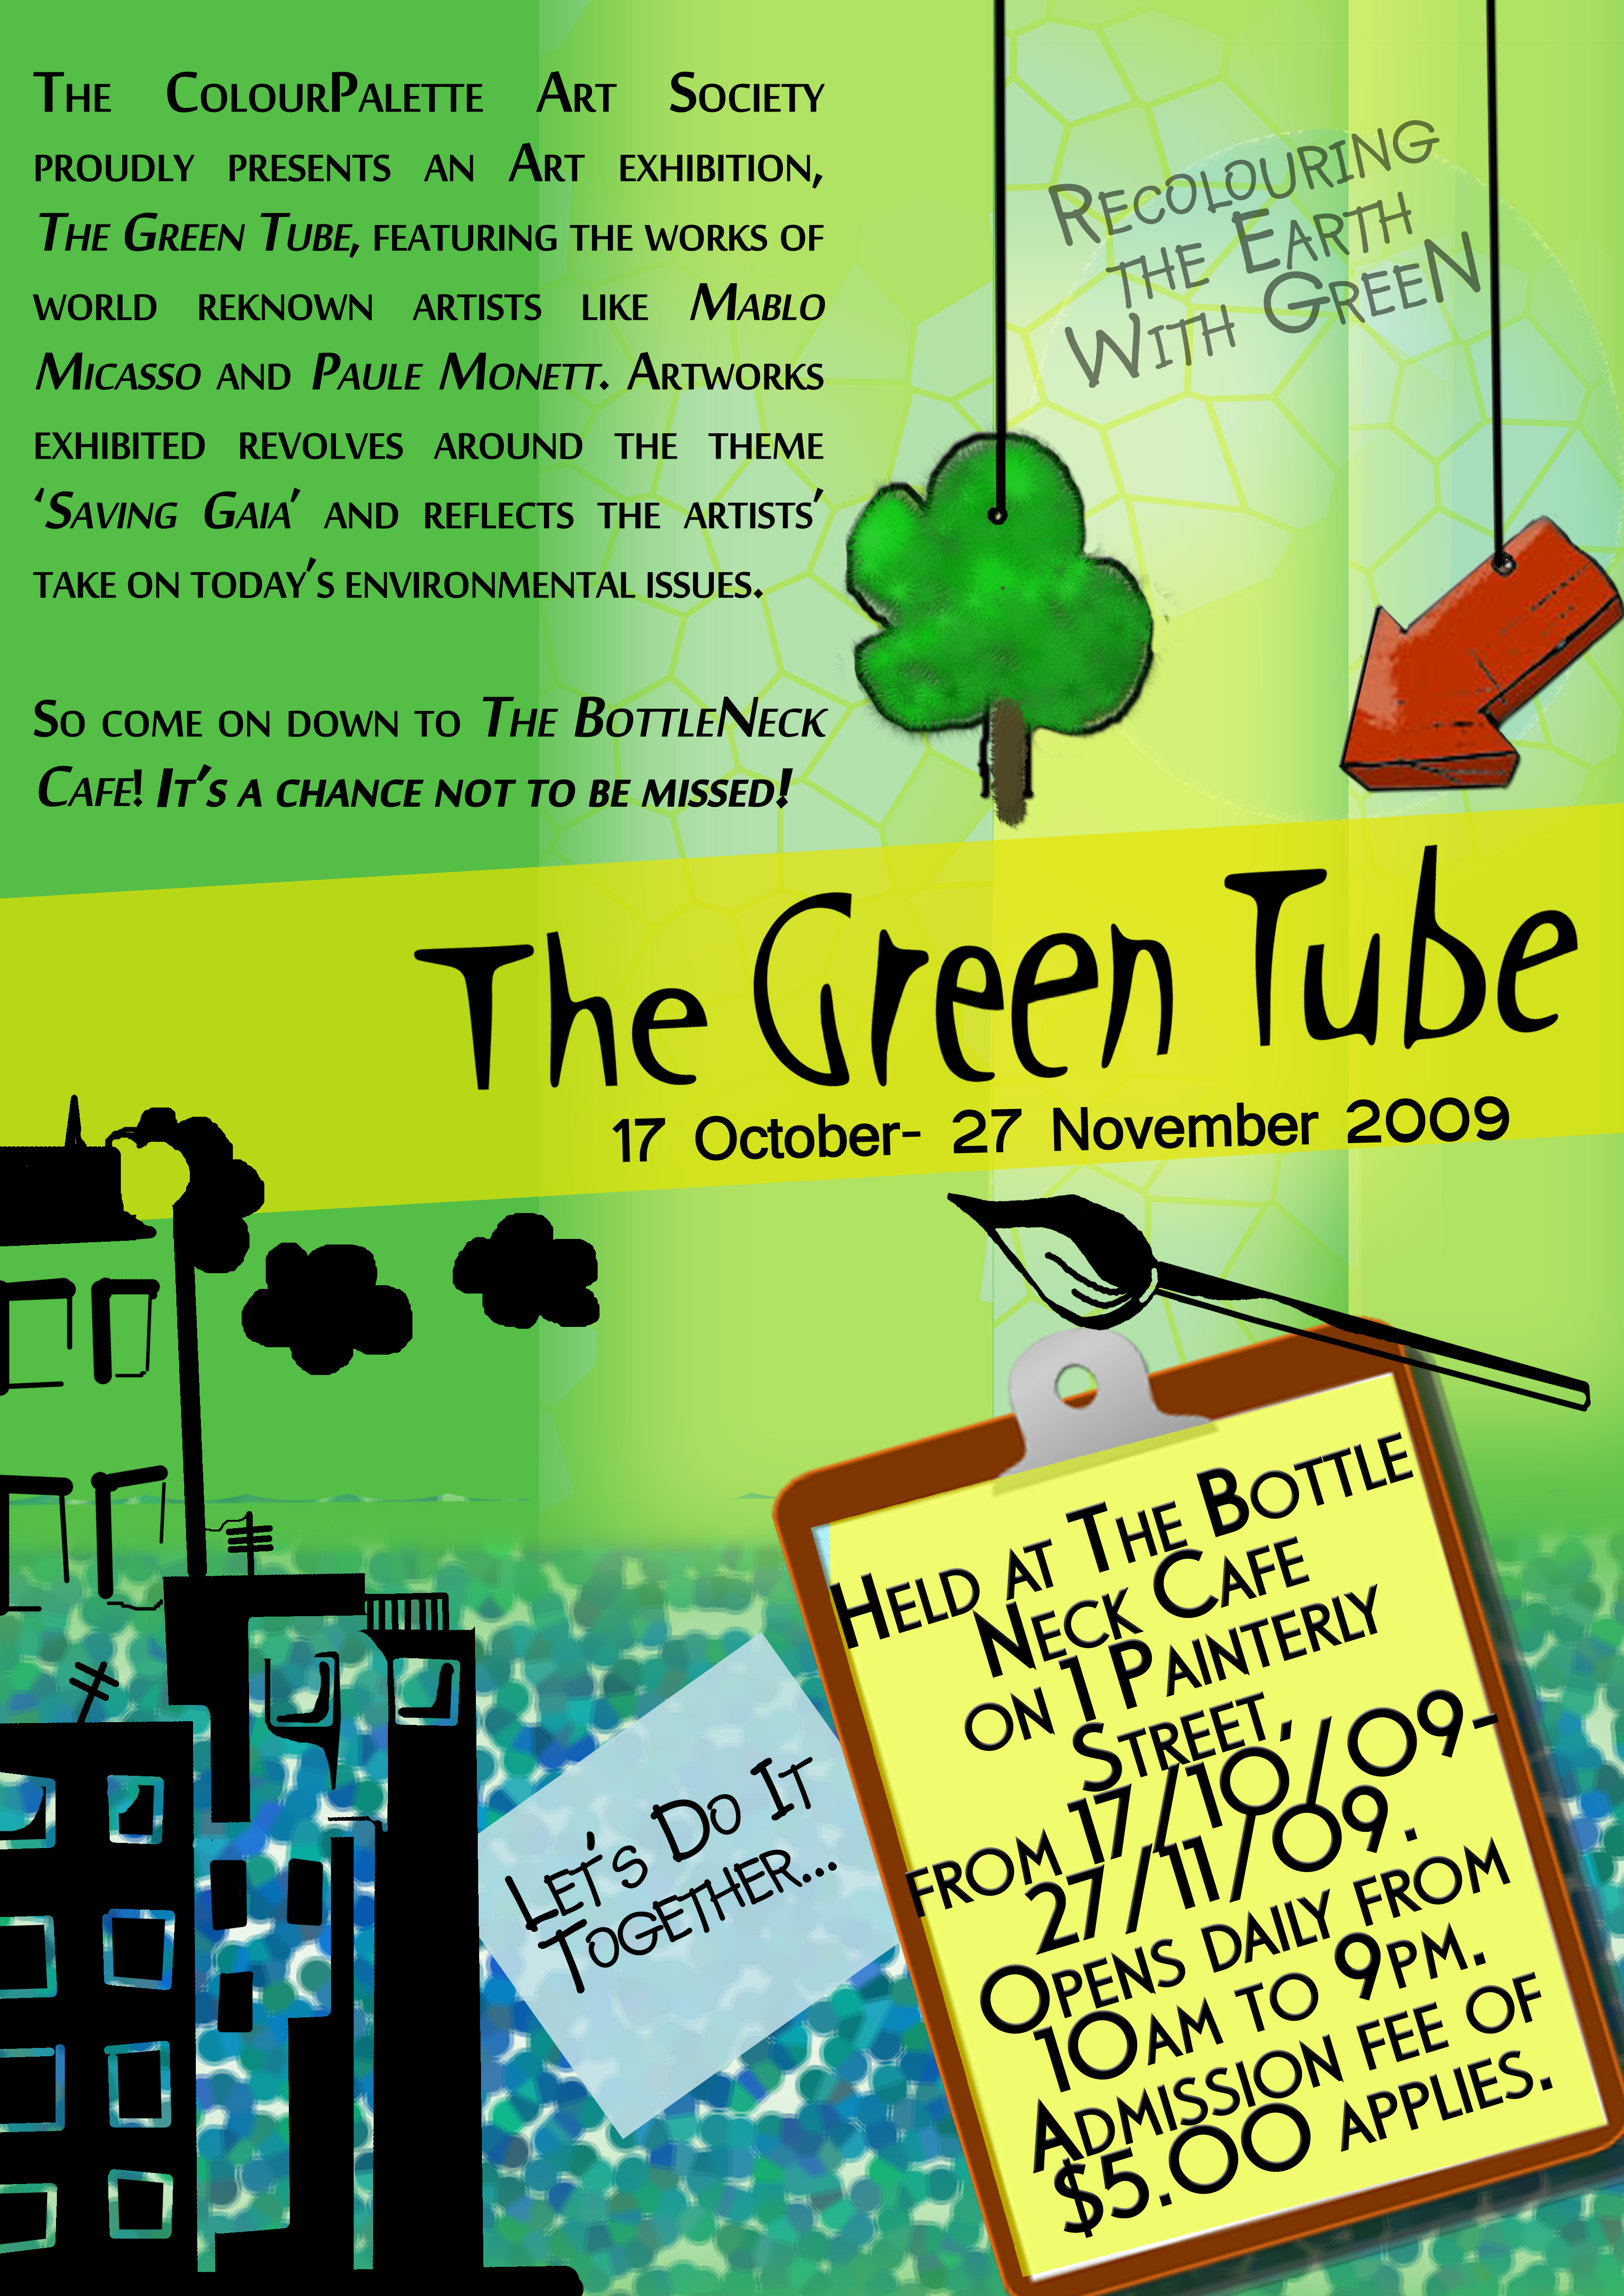 Poster design wikipedia - This Event Poster Is Advertising An Art Show With Works That Are Created Around The Idea Of Environmental Issues Green Is Immediately Associated With The